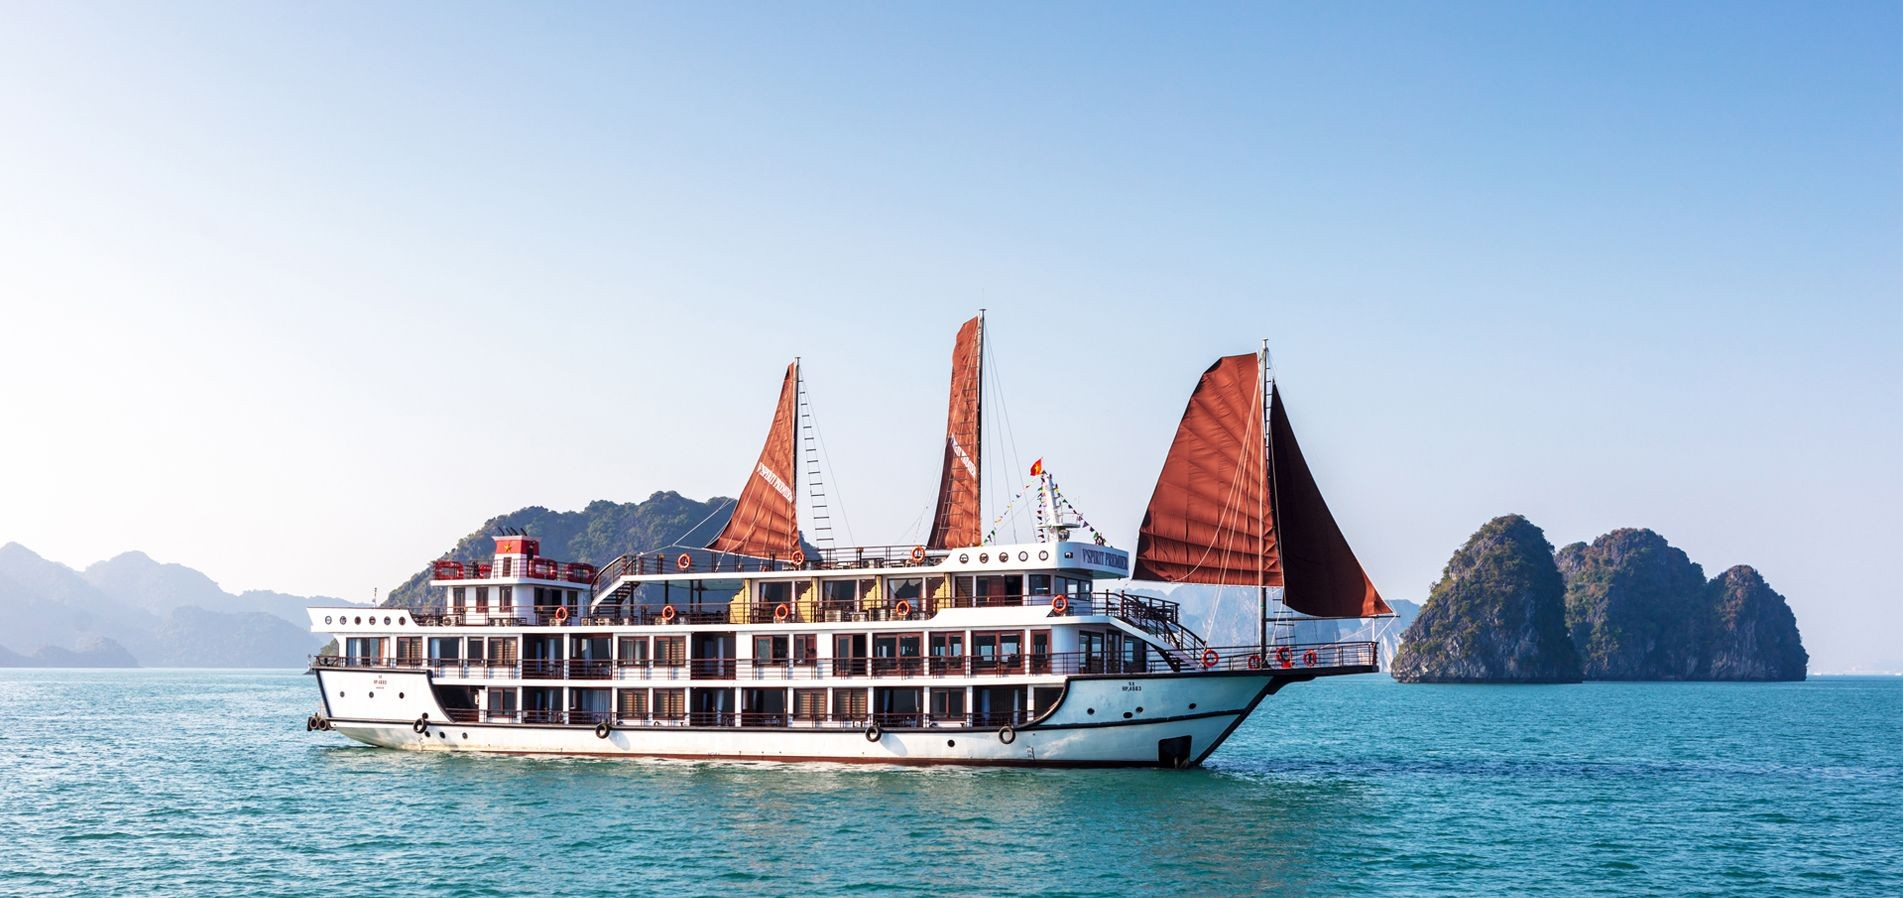 Tips on Cruise Safety When On Vacation in Vietnam